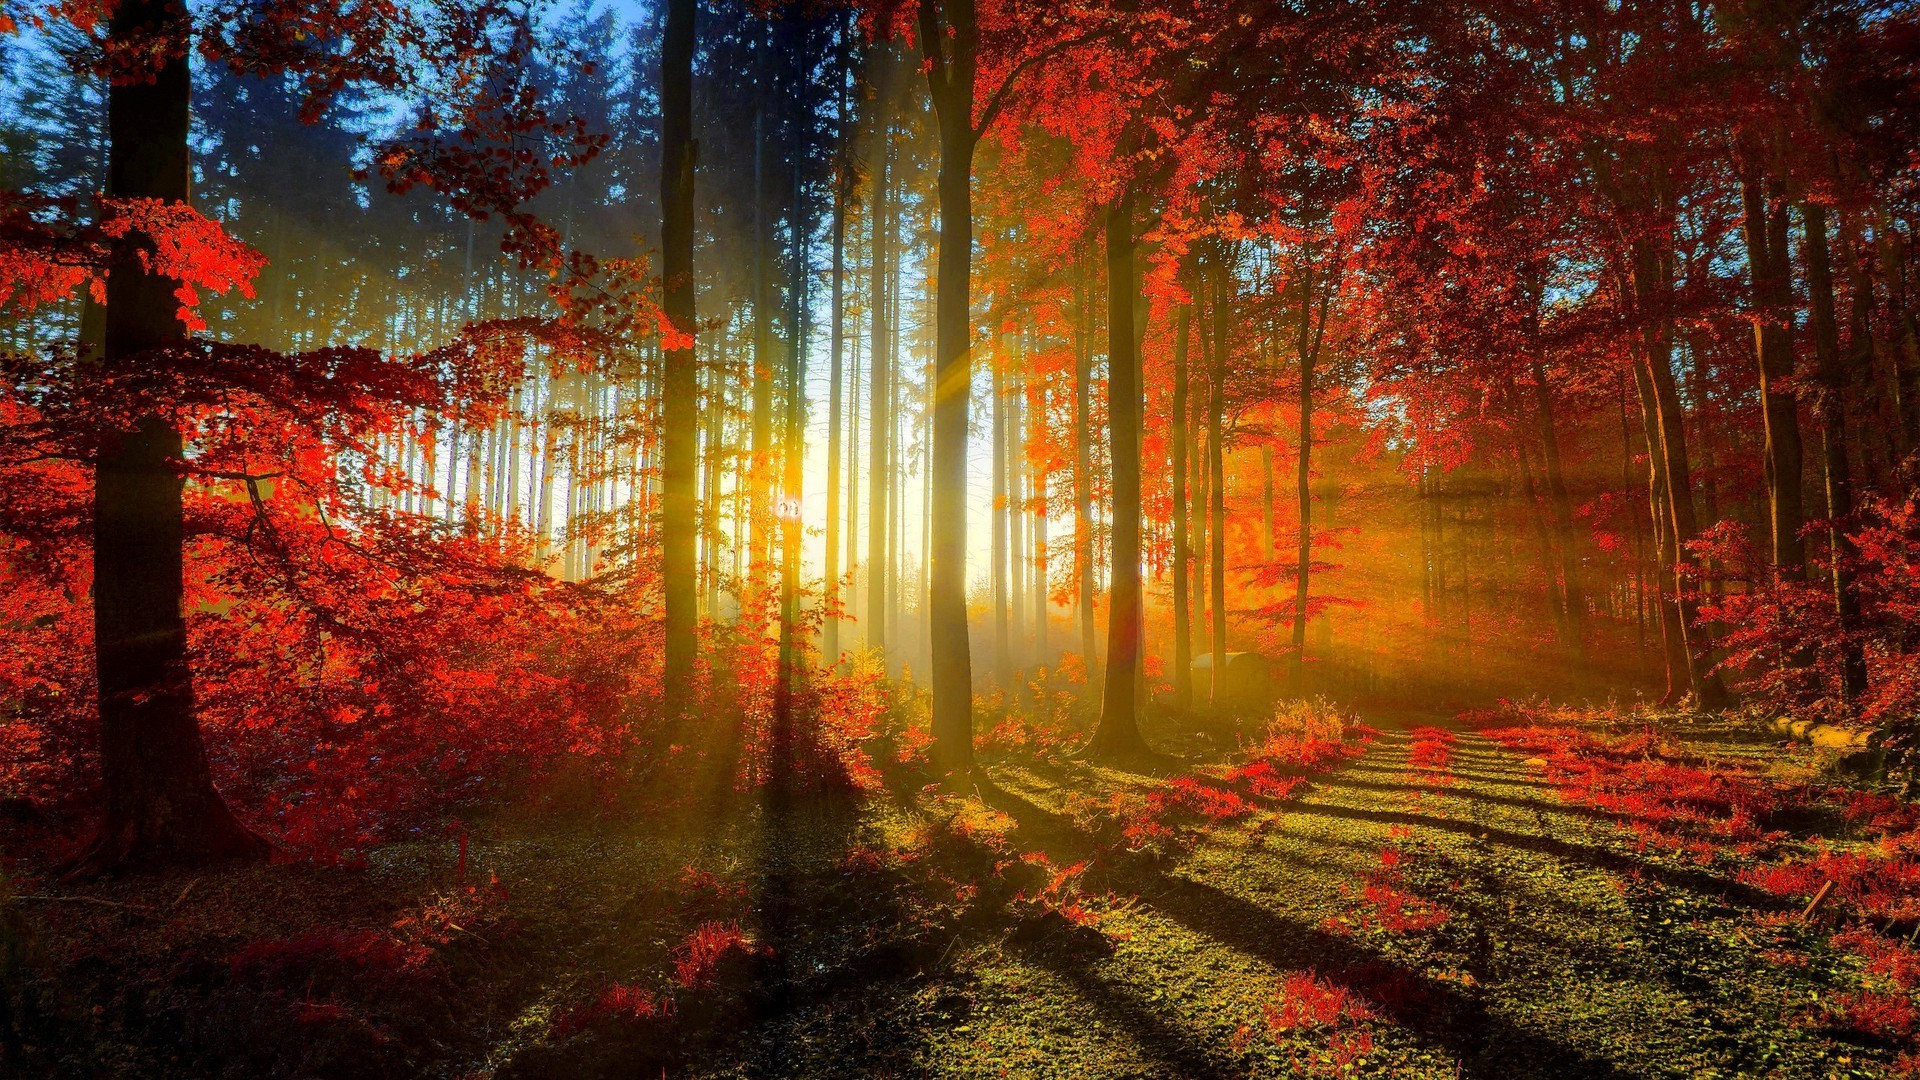 Natural Images Wallpapers Free Download